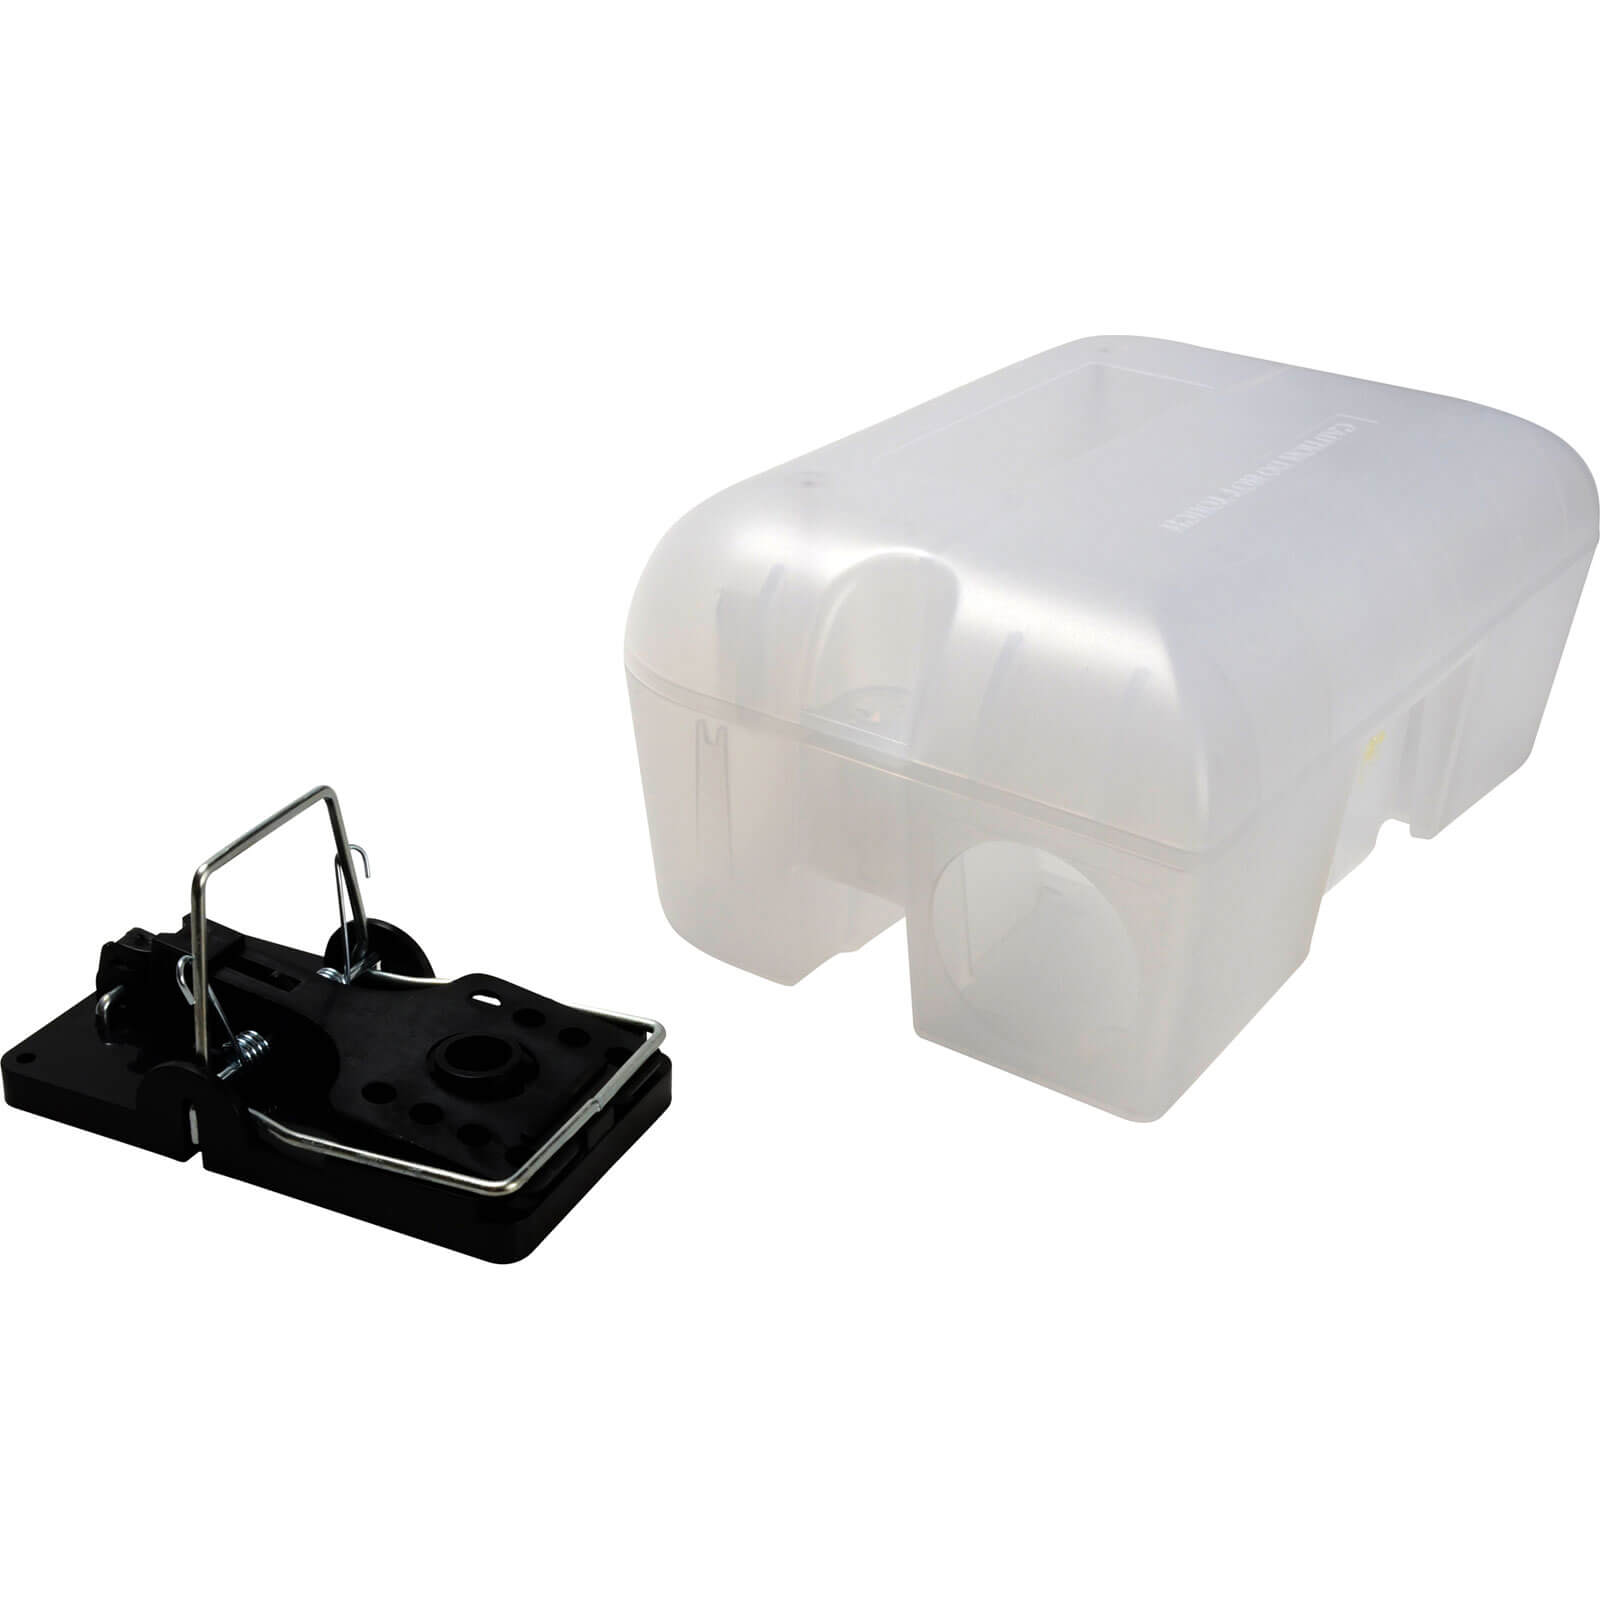 Rentokil Enclosed Rat Trap in Lockable Box